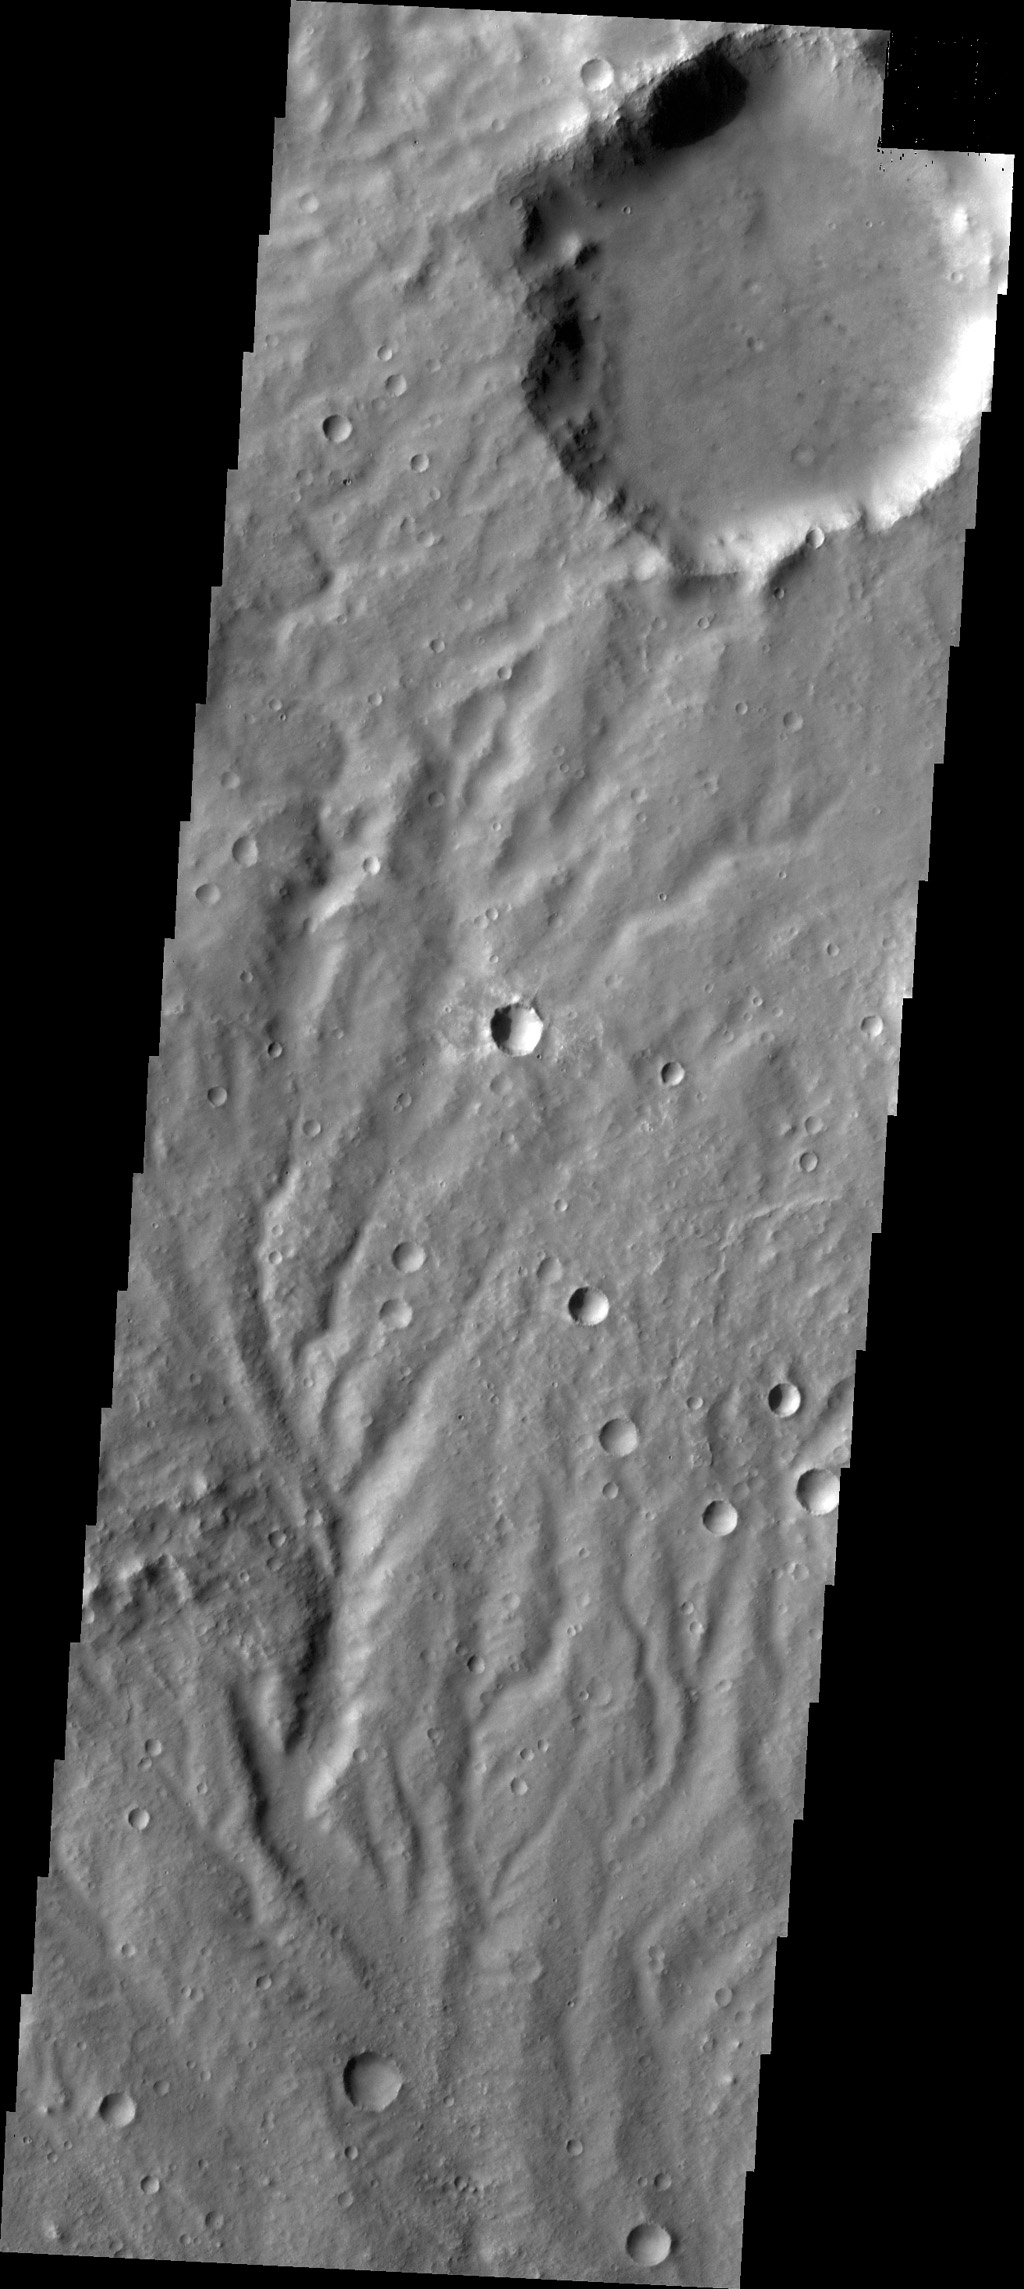 The channels in this image captured by NASA's 2001 Mars Odyssey spacecraft are dissecting a slope near Huygens Crater.